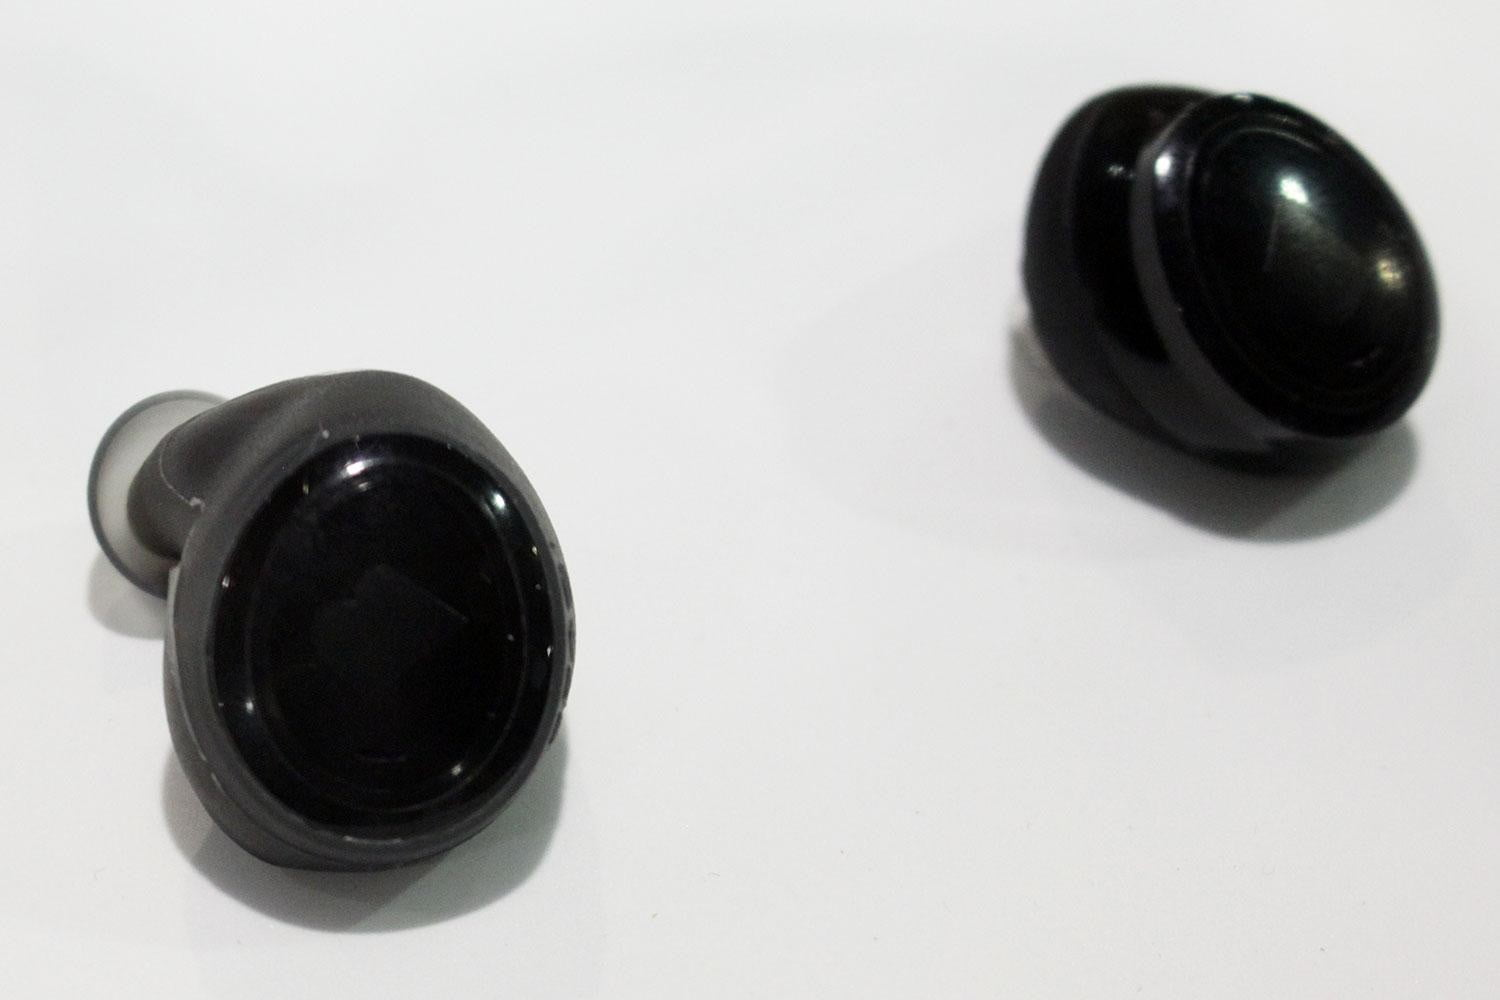 feature packed dash headphones surface at ces bragi 1